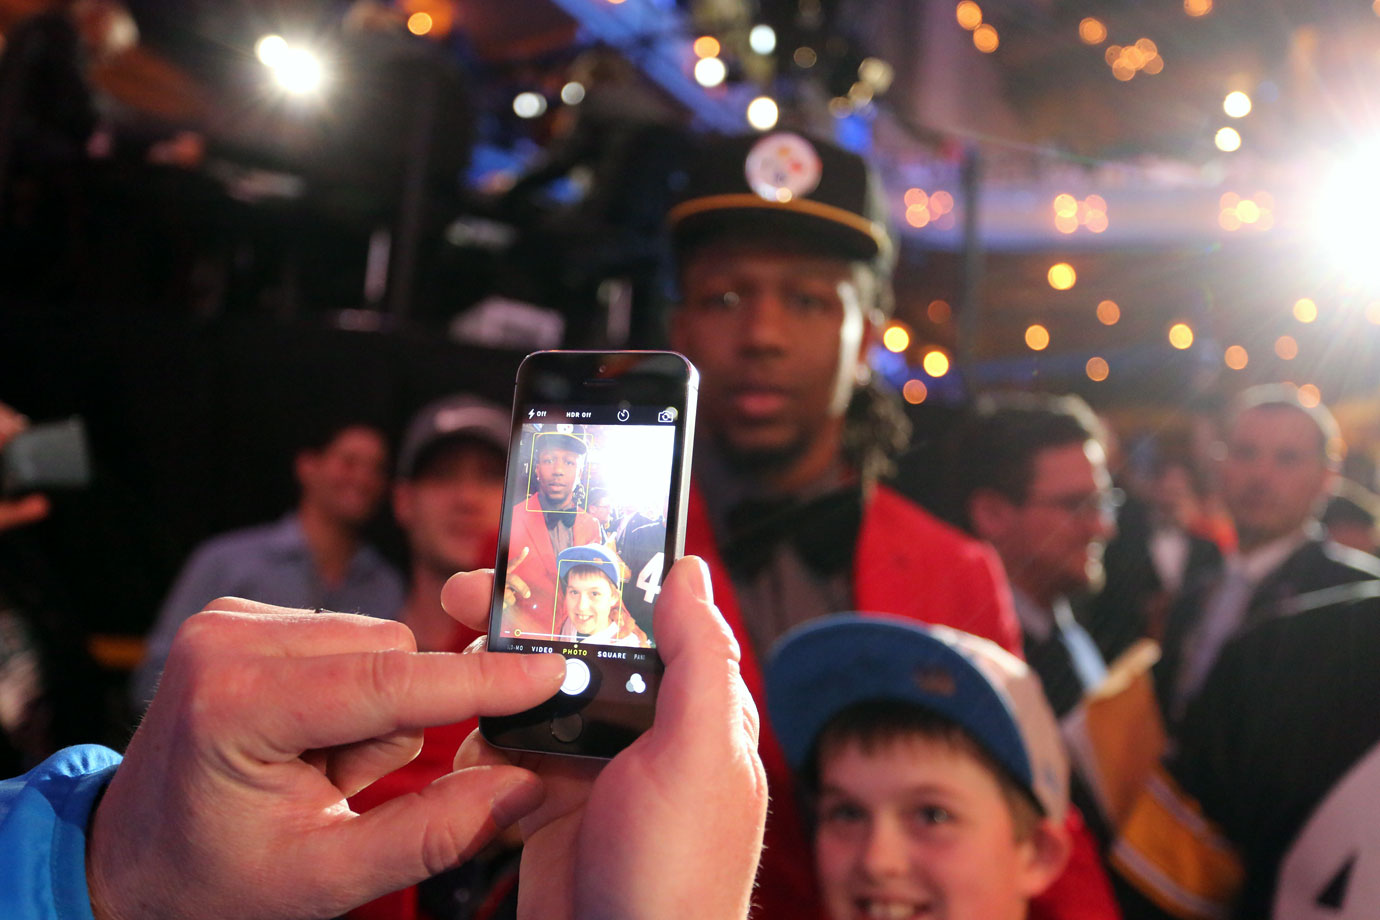 Kentucky linebacker Alvin (Bud) Dupree took time to pose with a young fan after being selected by the Steelers with the 22nd pick.